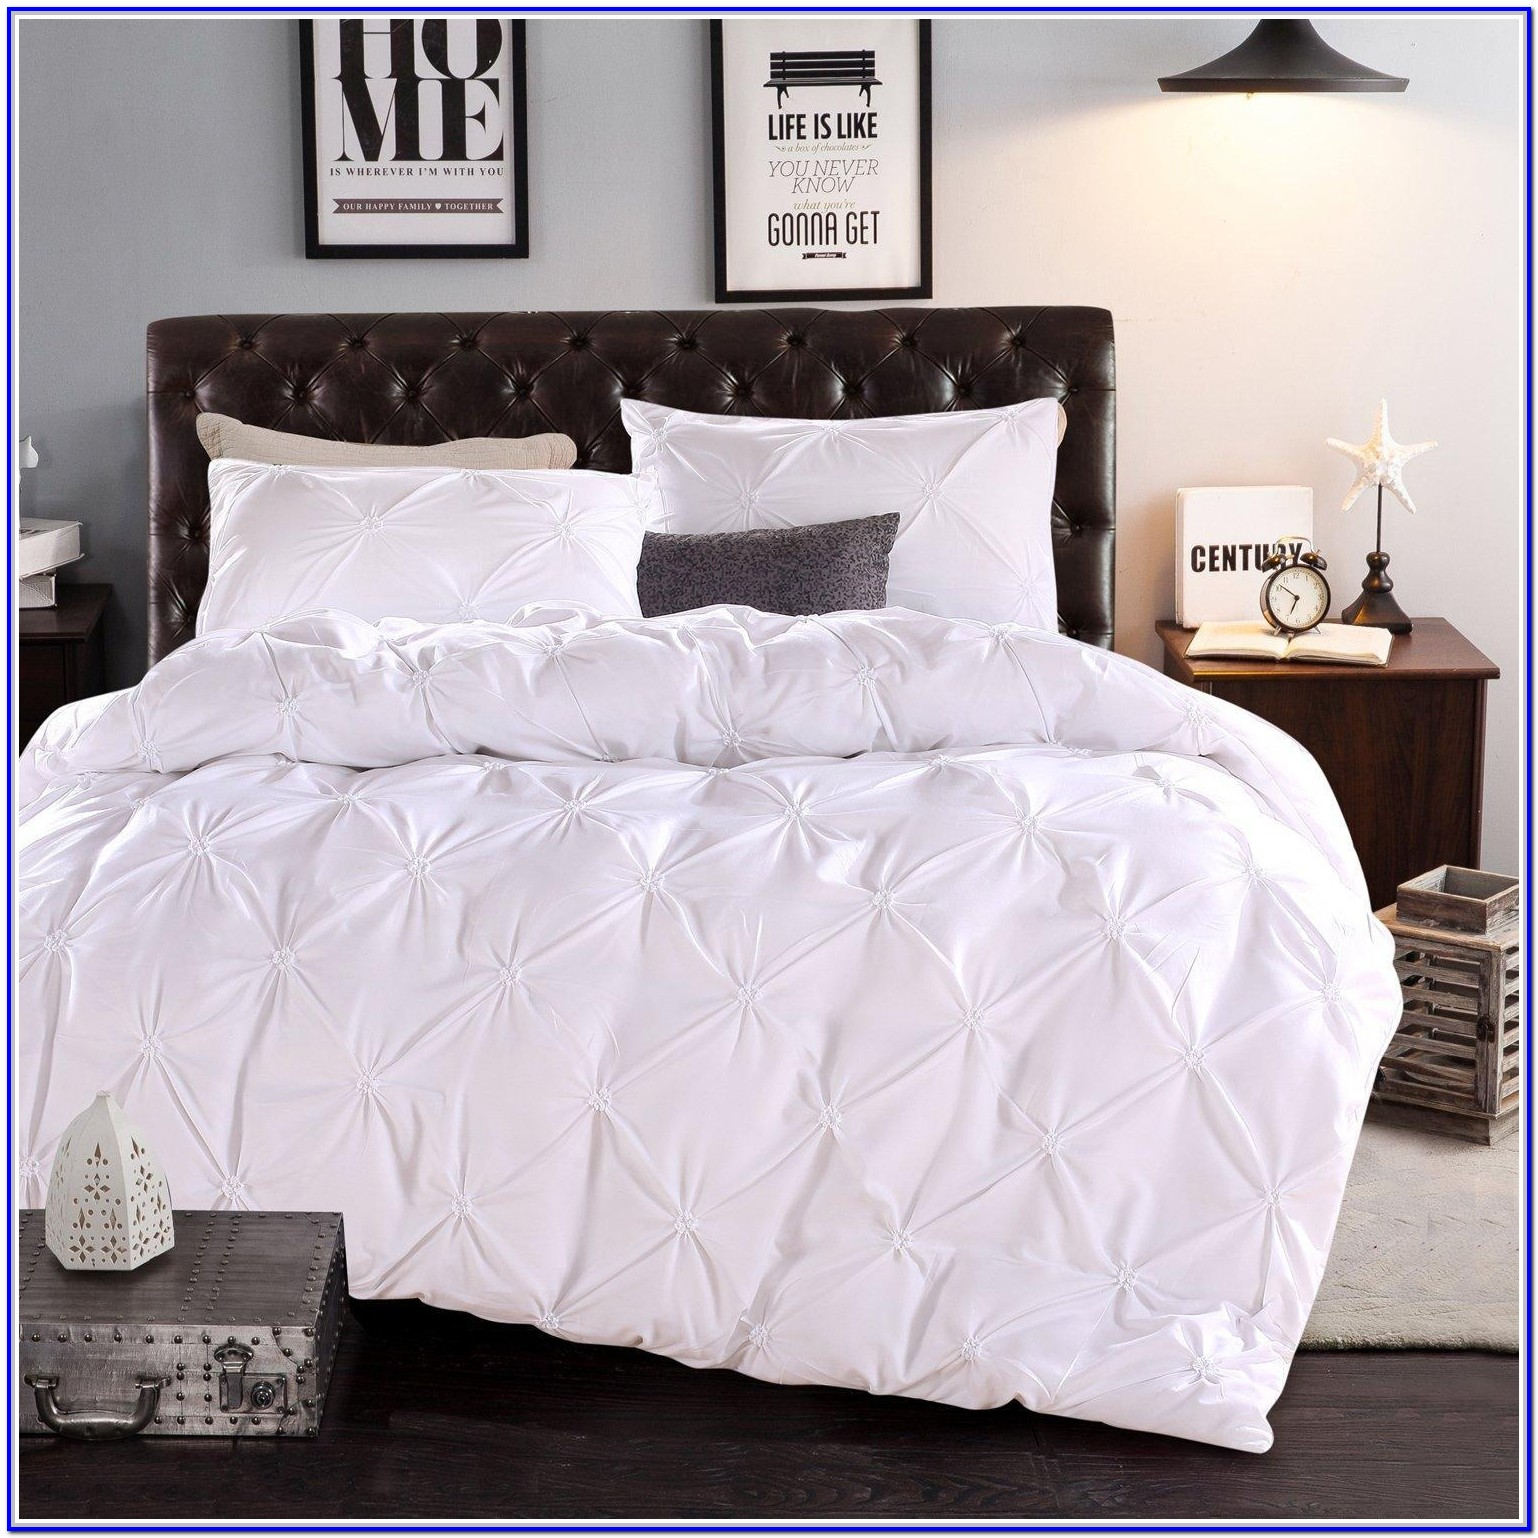 King Size Bed Comforters Target